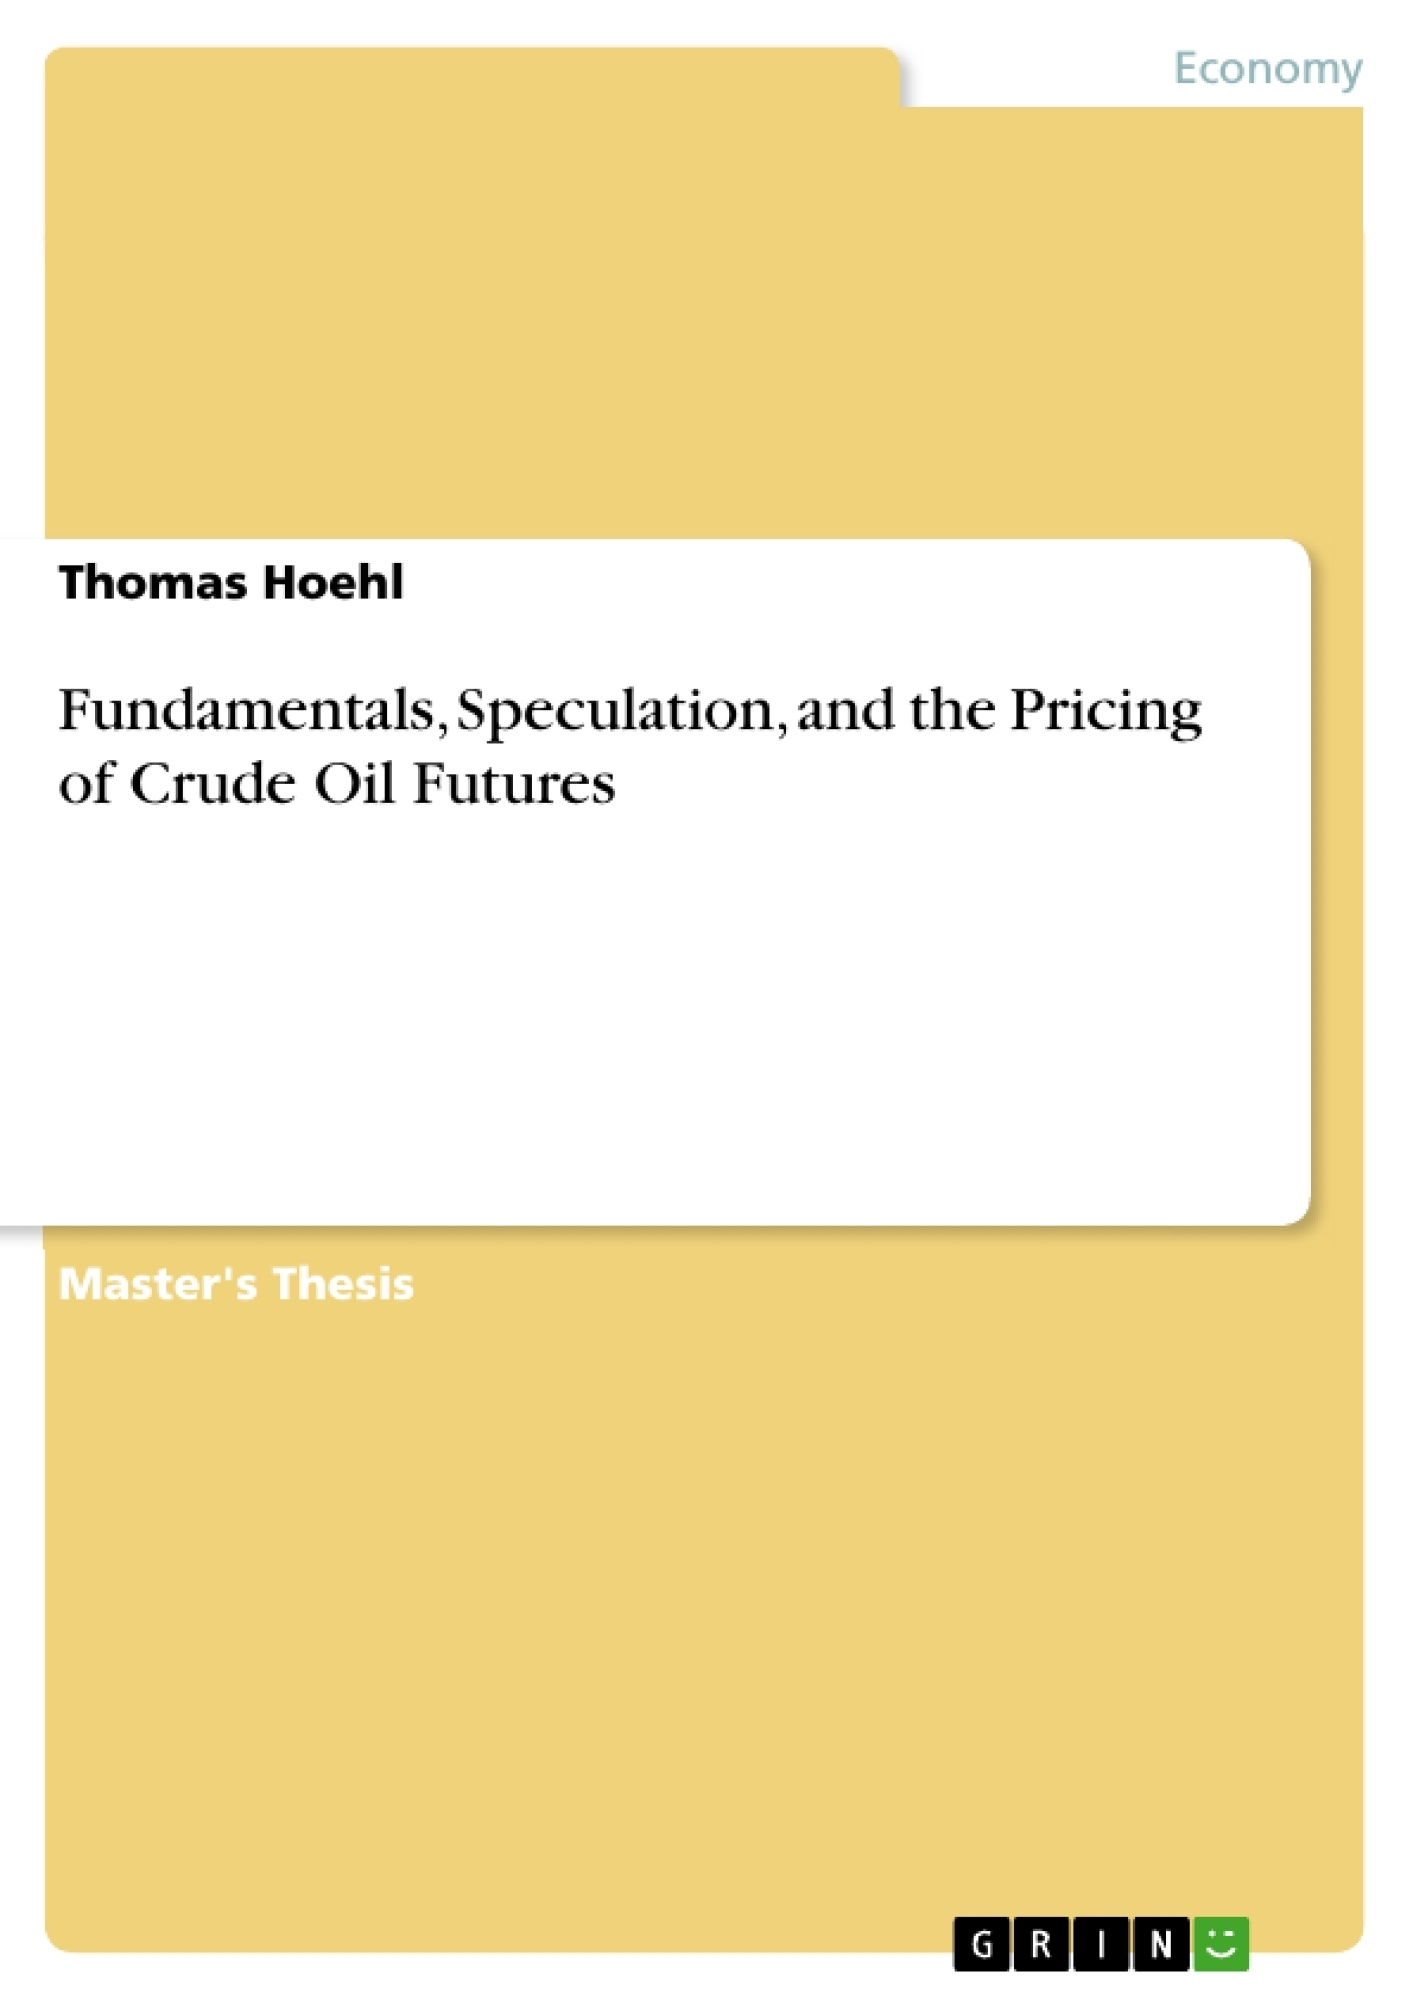 Title: Fundamentals, Speculation, and the Pricing of Crude Oil Futures